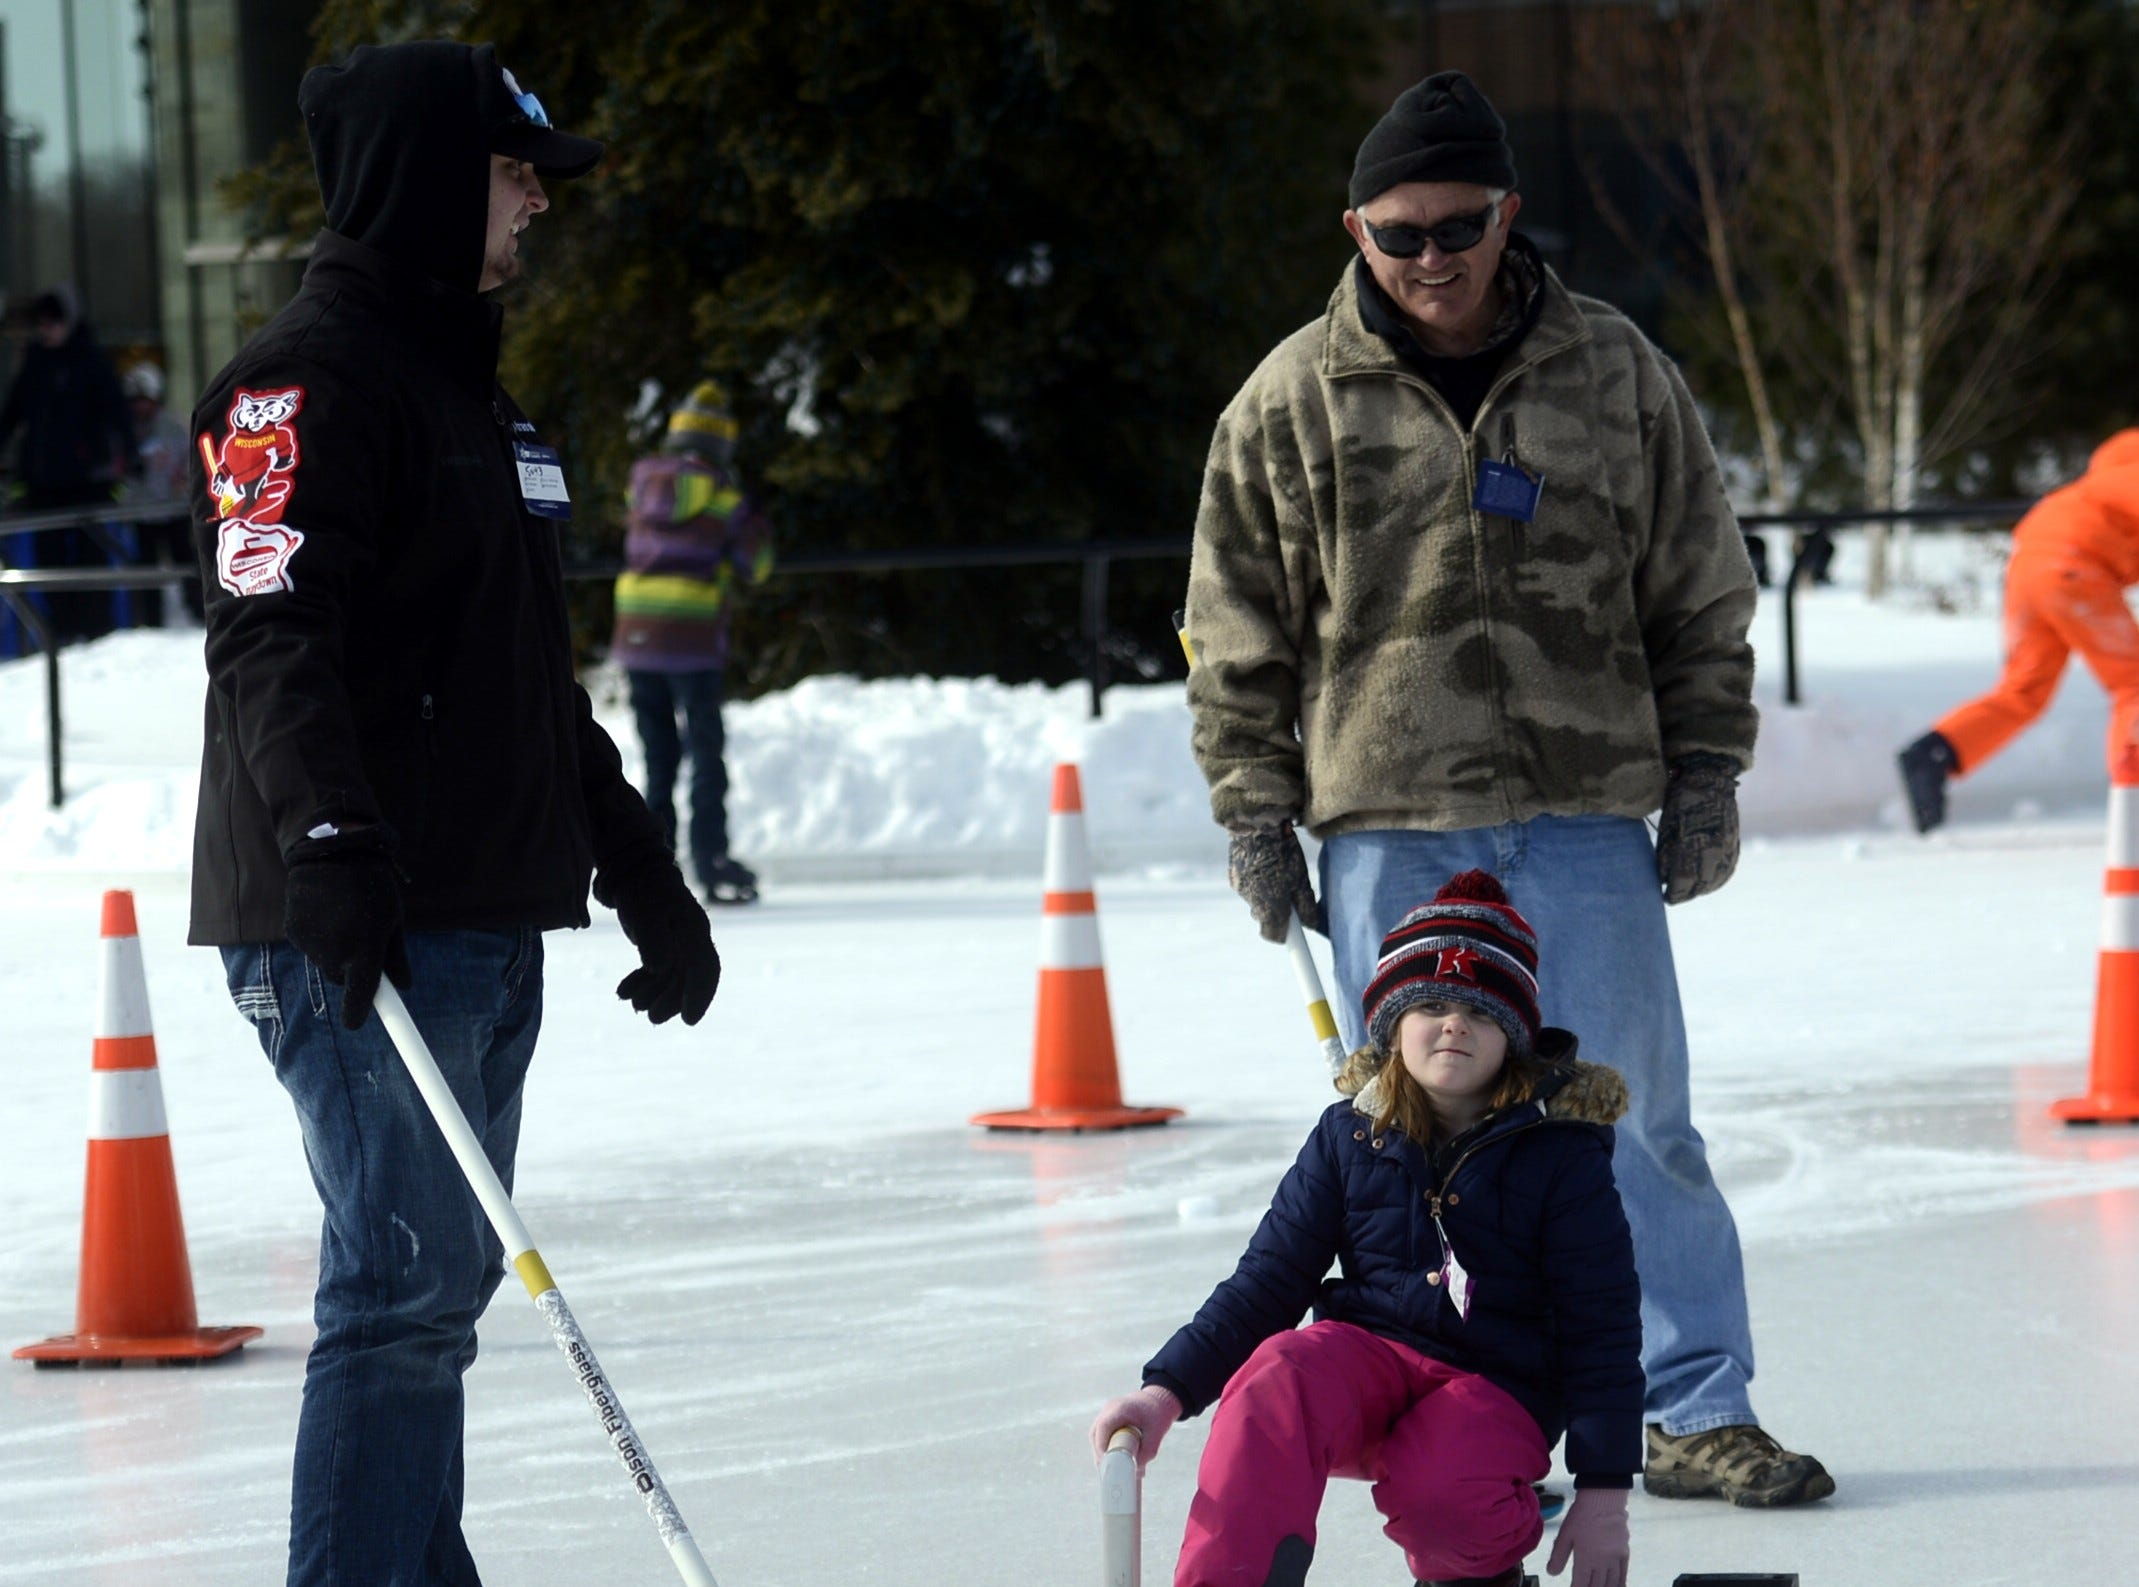 Lily Roddy, 6, of Kimberly tries curling during the Titletown Winter Games on Saturday, Feb. 16, 2019.